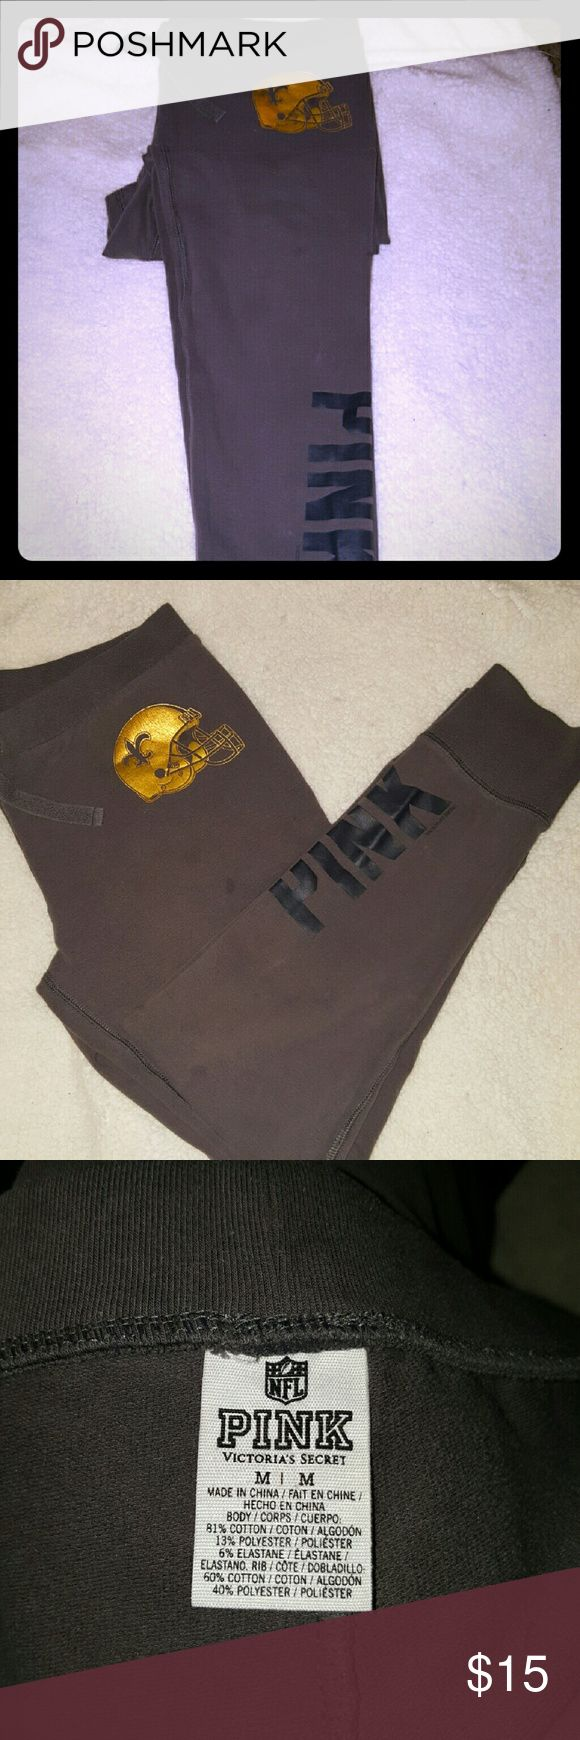 *TODAY ONLY SALE* Victoria's secret PINK SPECIAL These are a NFL limited edition pink legging sweatpant they have been used and only flaw is the two small oil or grease spots in picture its on the right leg only the one side has the football saints helmet and pink on the bottom in black letters up the leg other side is plain size M good for game day at home PINK Victoria's Secret Pants Leggings